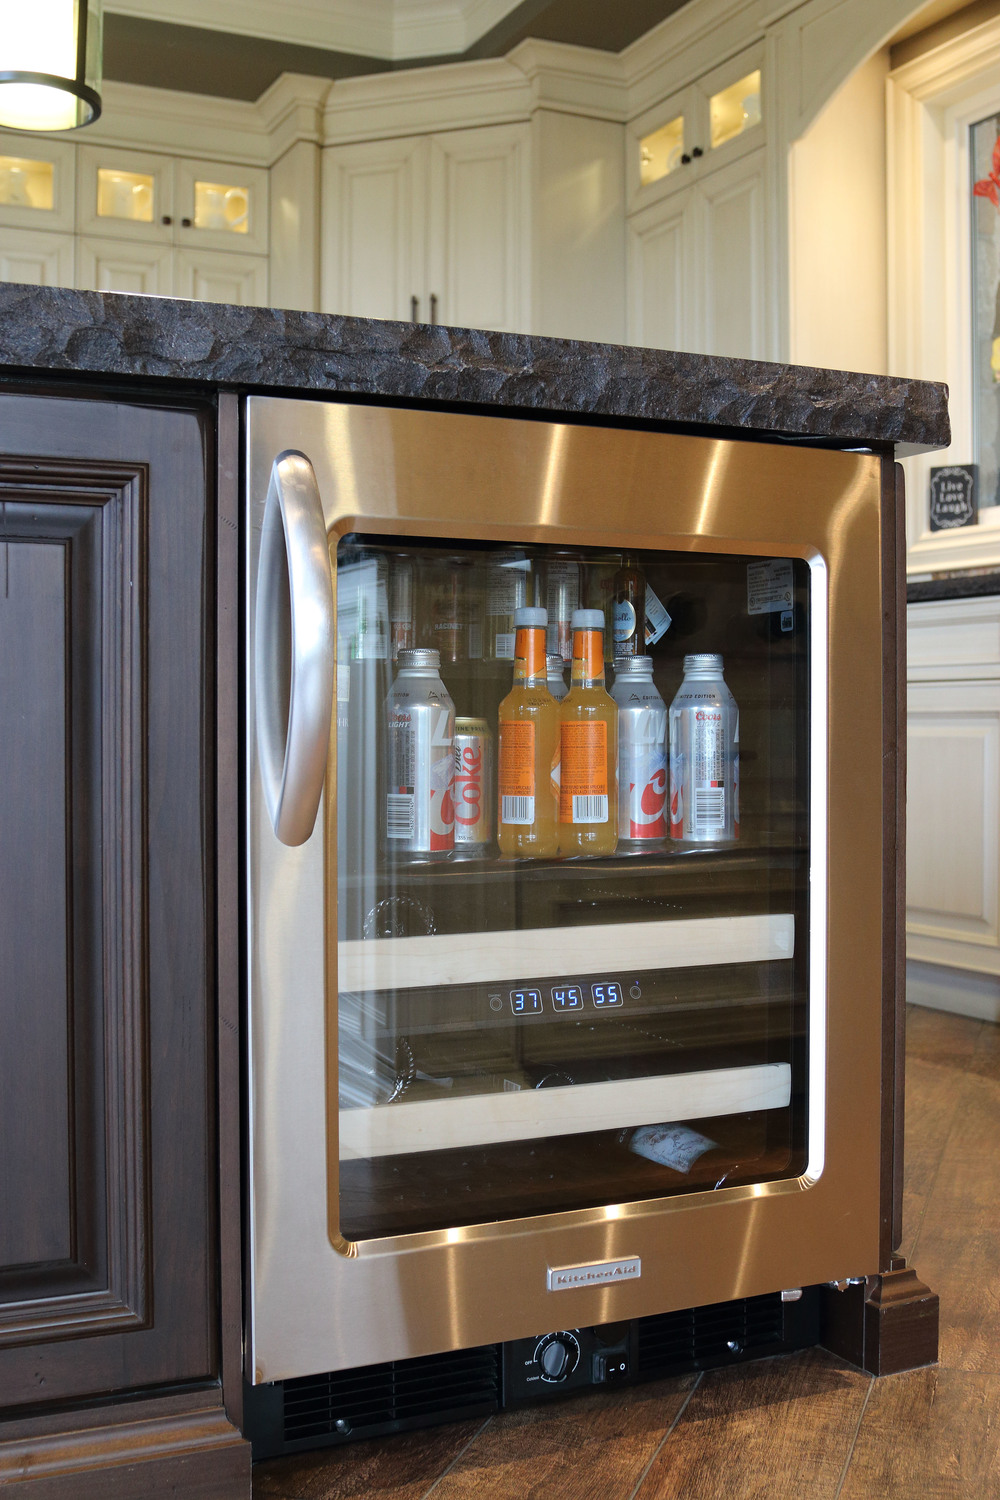 Boundary wine fridge.jpg